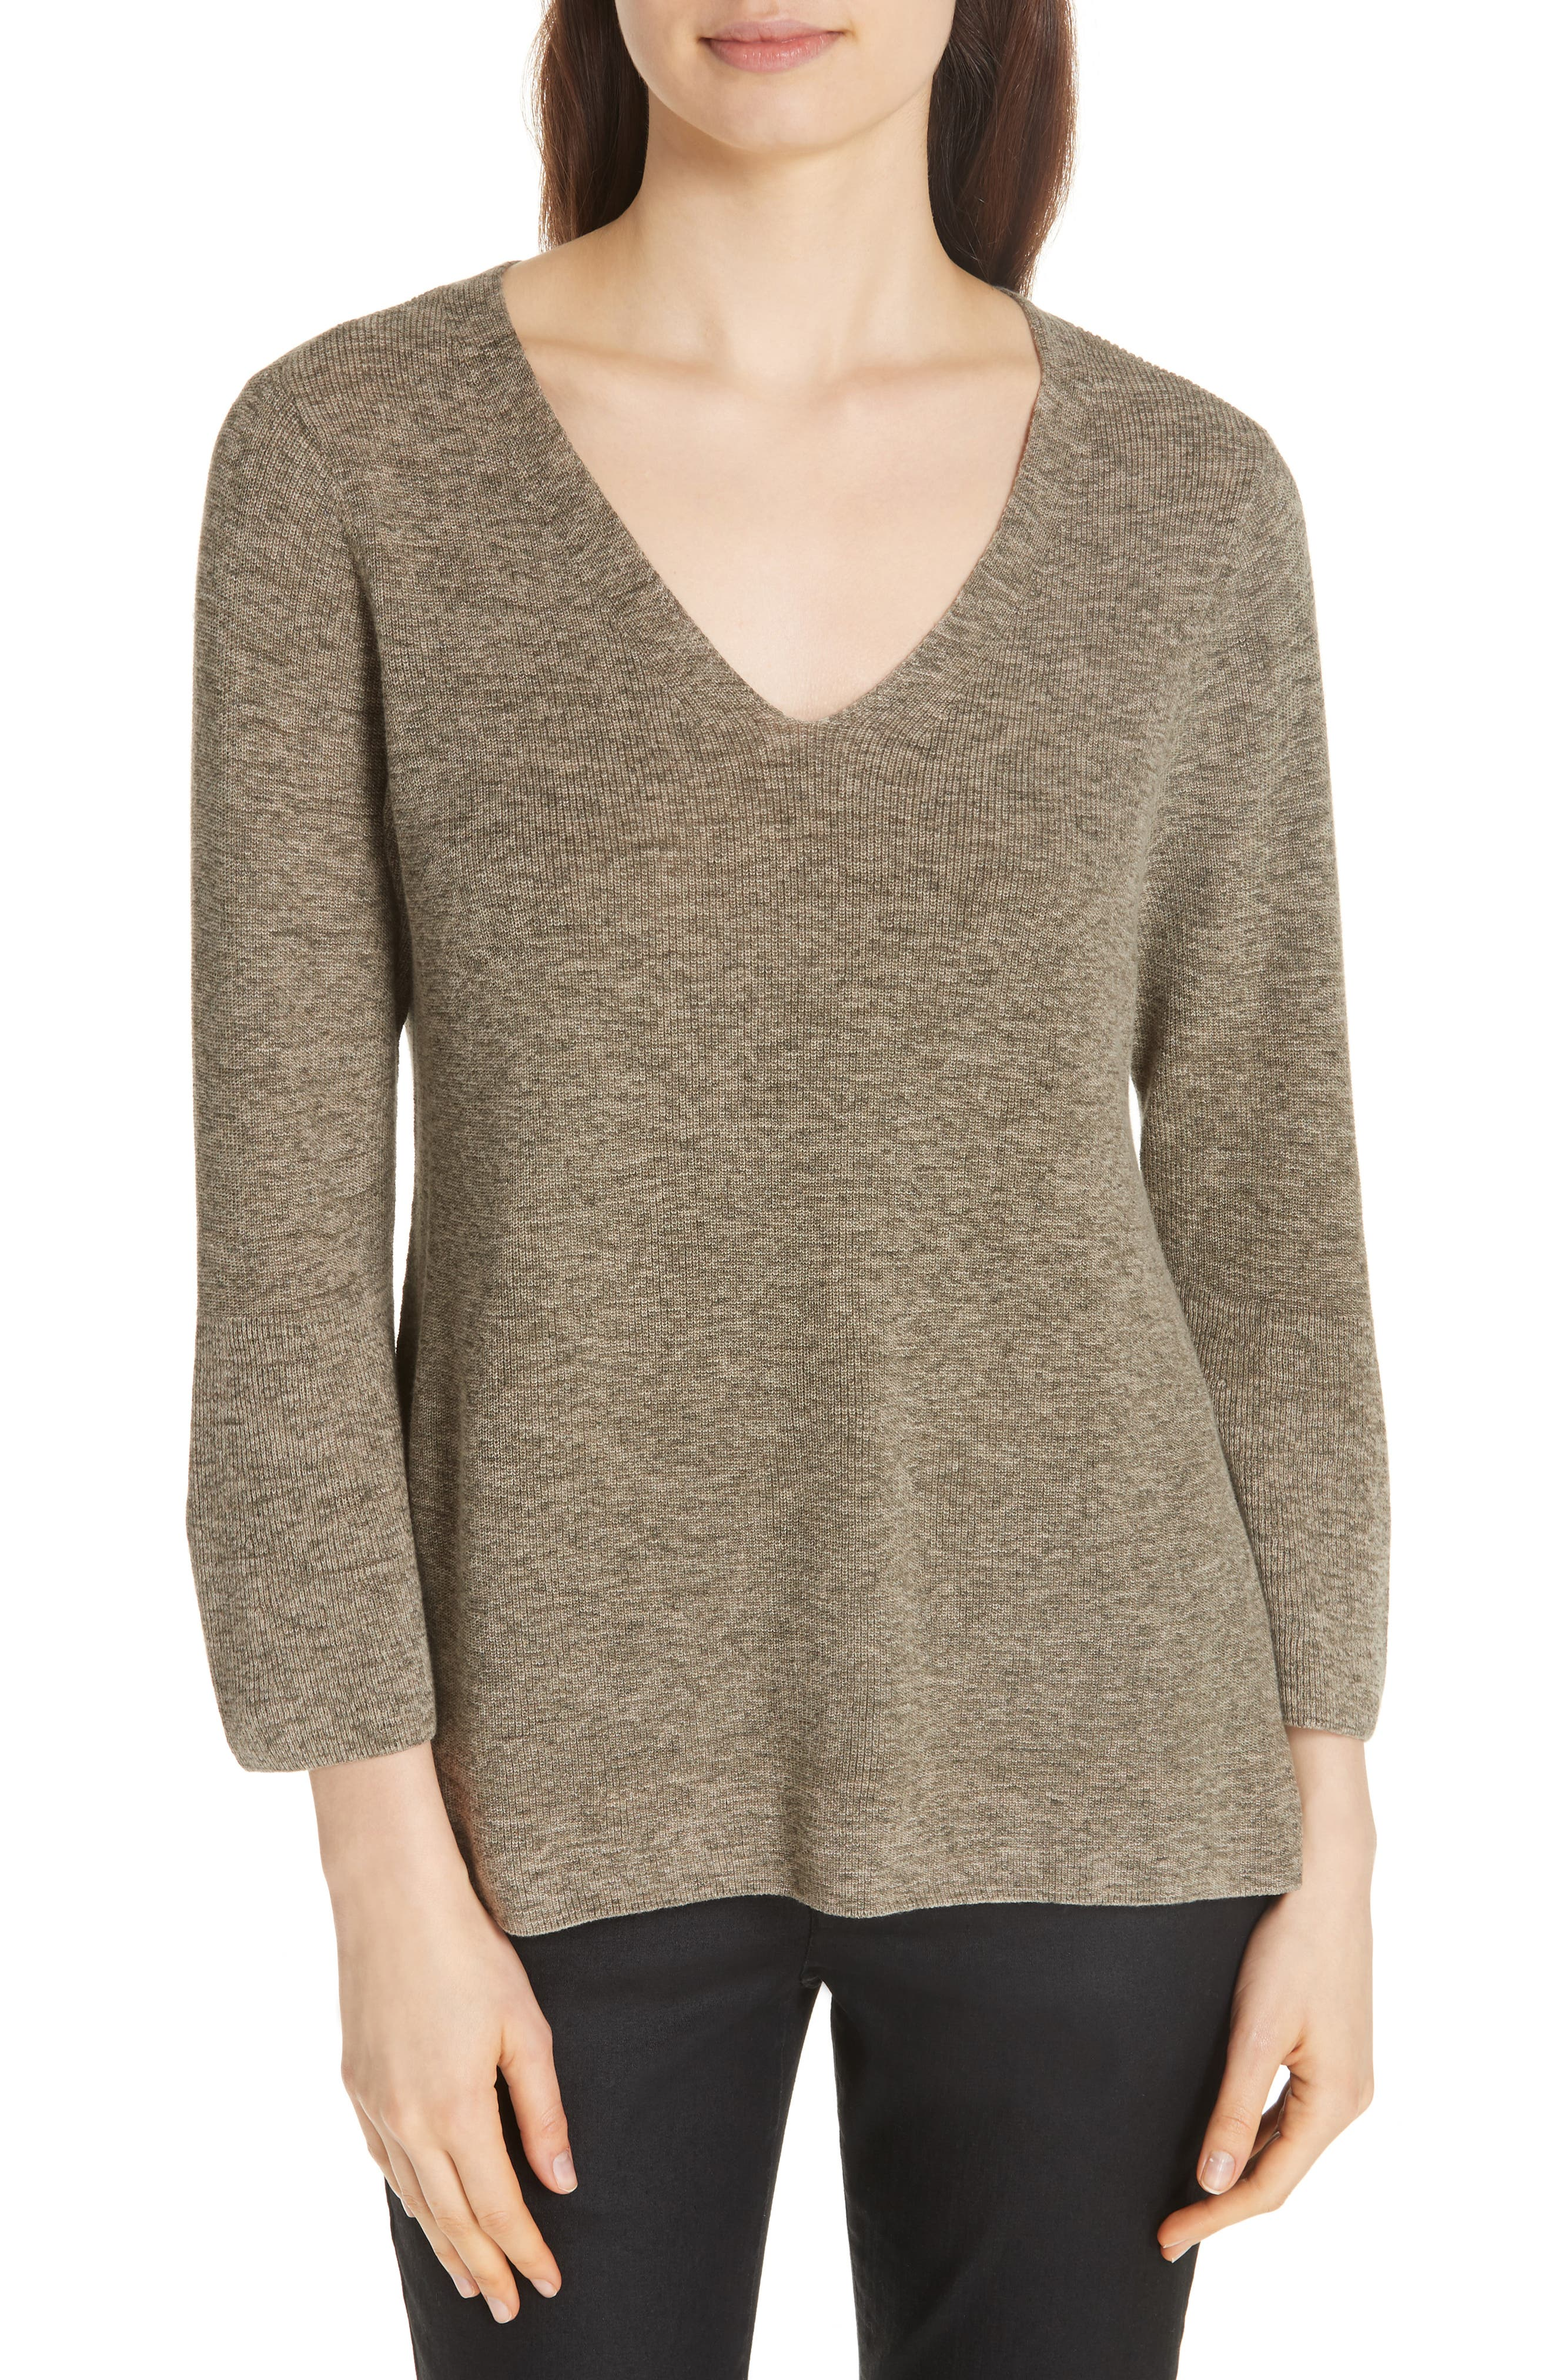 Bell Cuff Organic Cotton Sweater,                             Main thumbnail 1, color,                             Olive